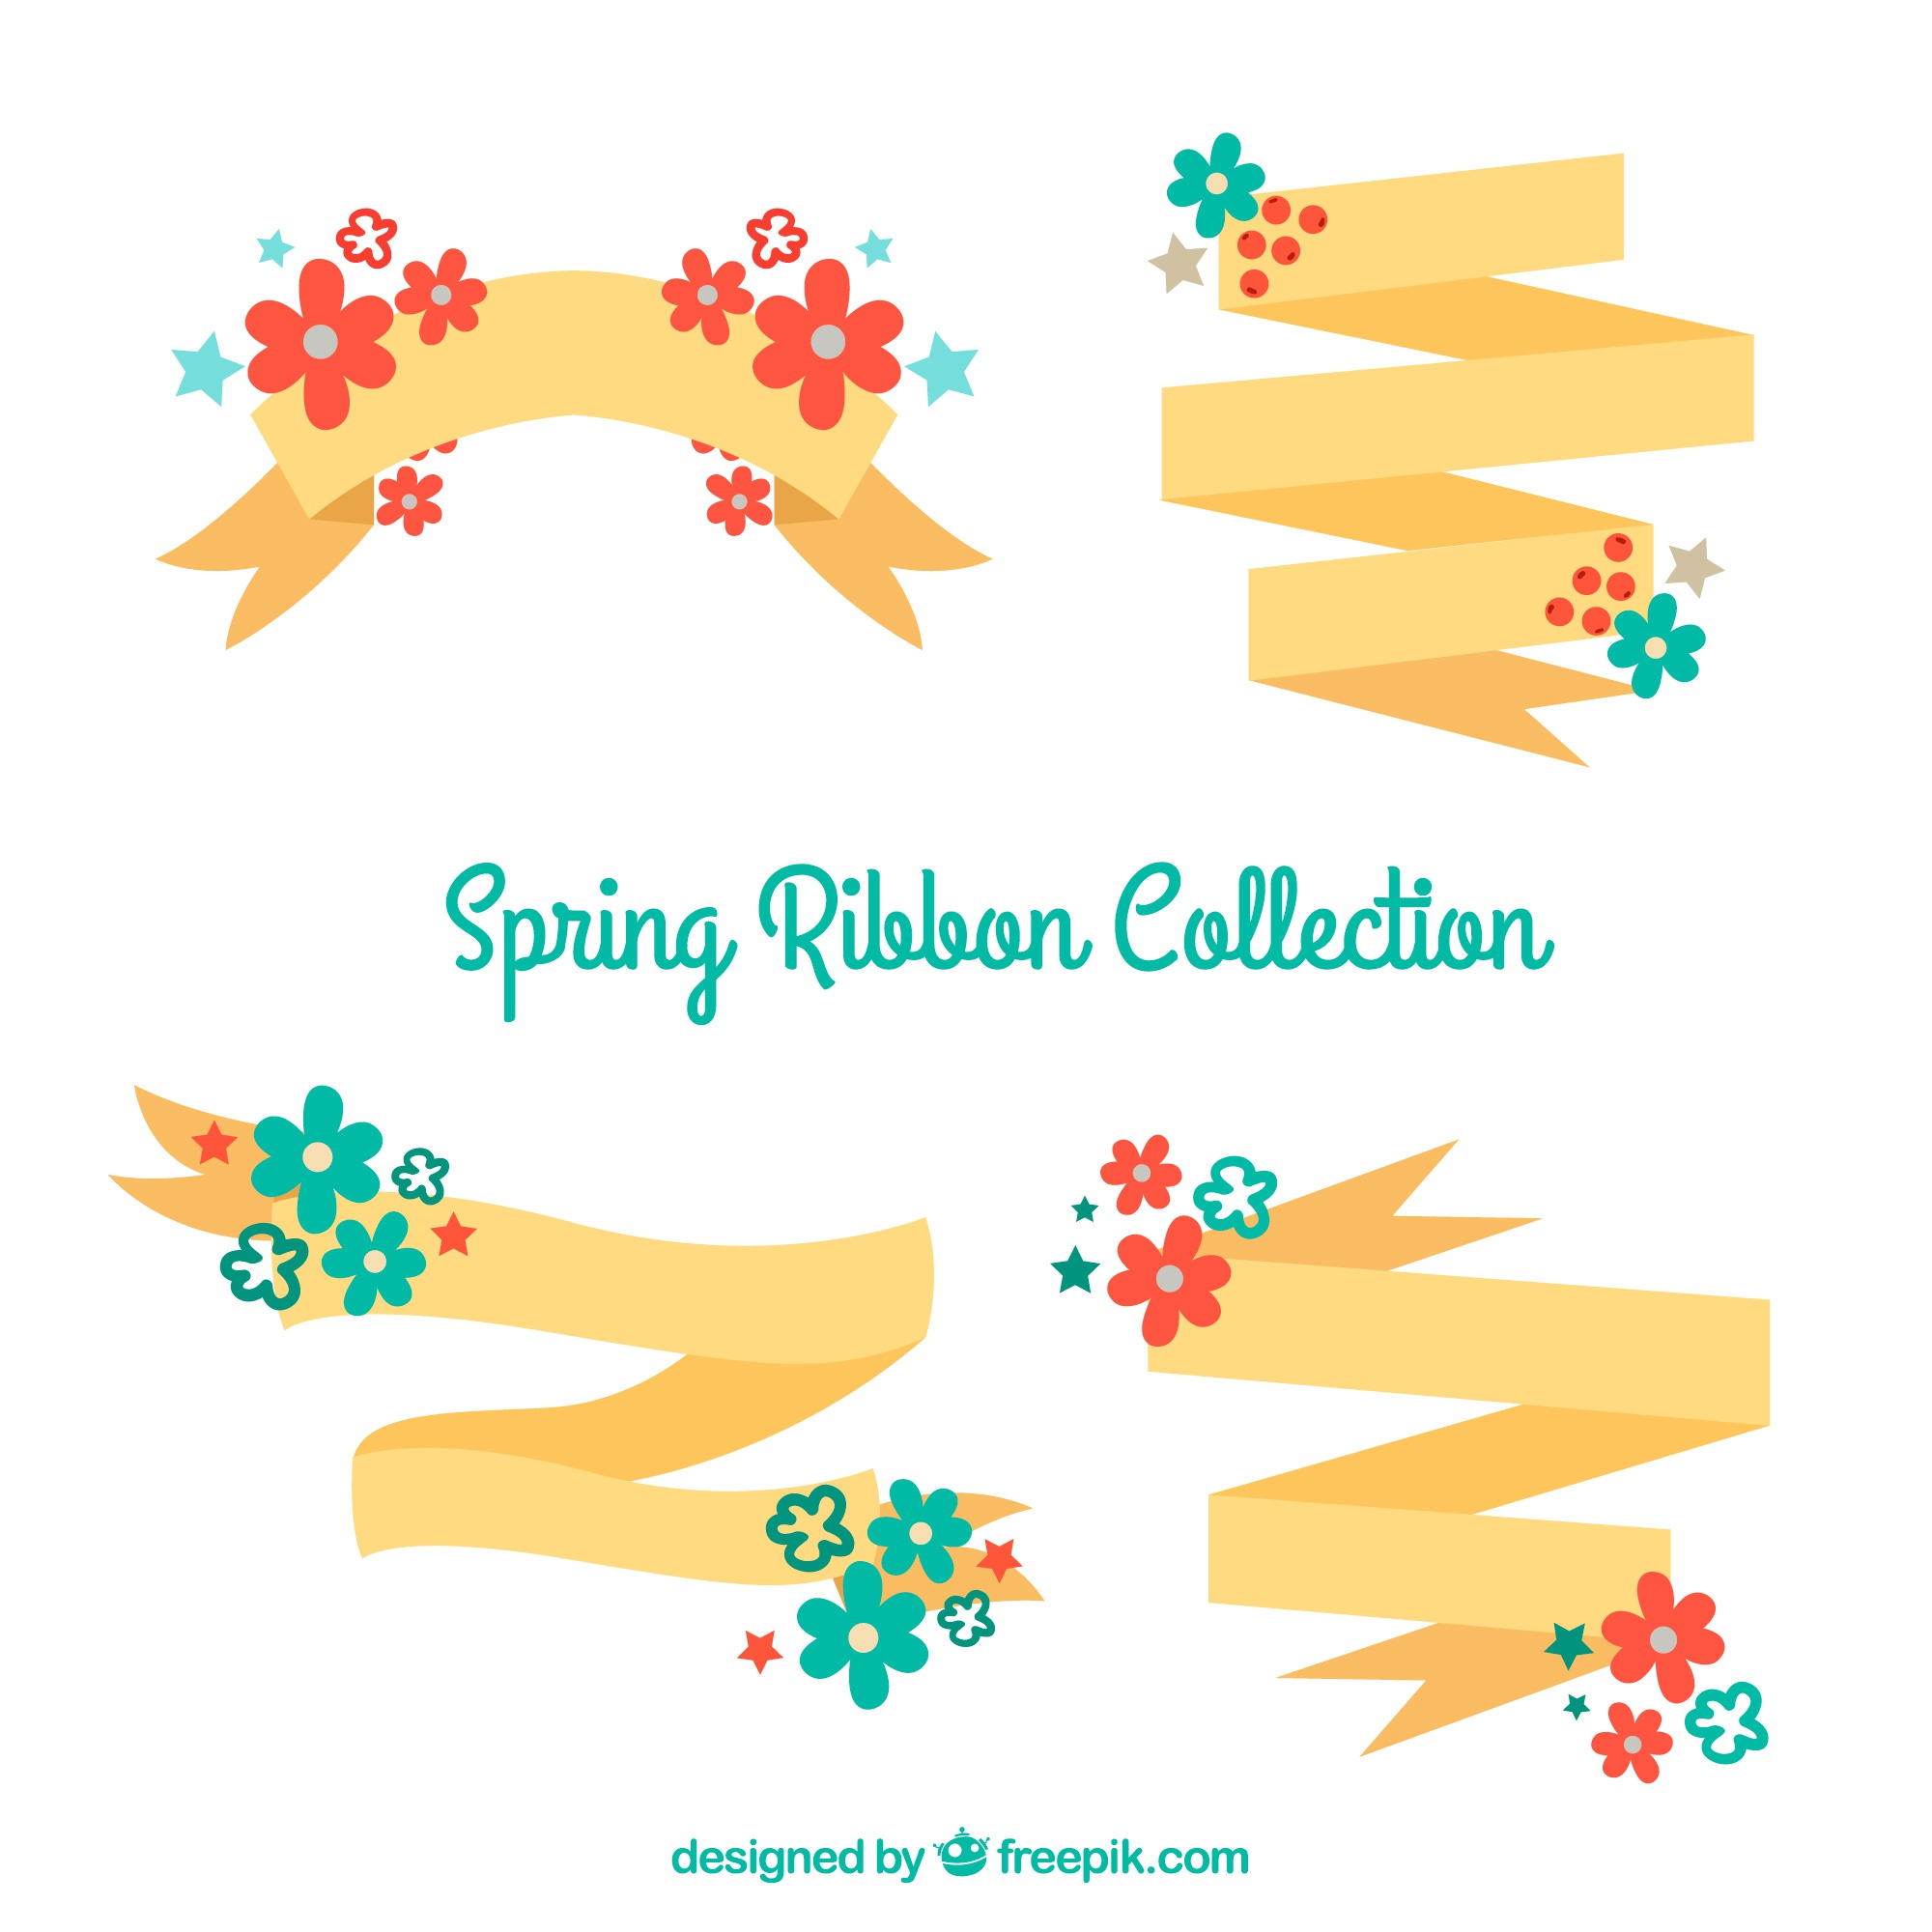 Decorative ribbons with red and blue flowers for spring